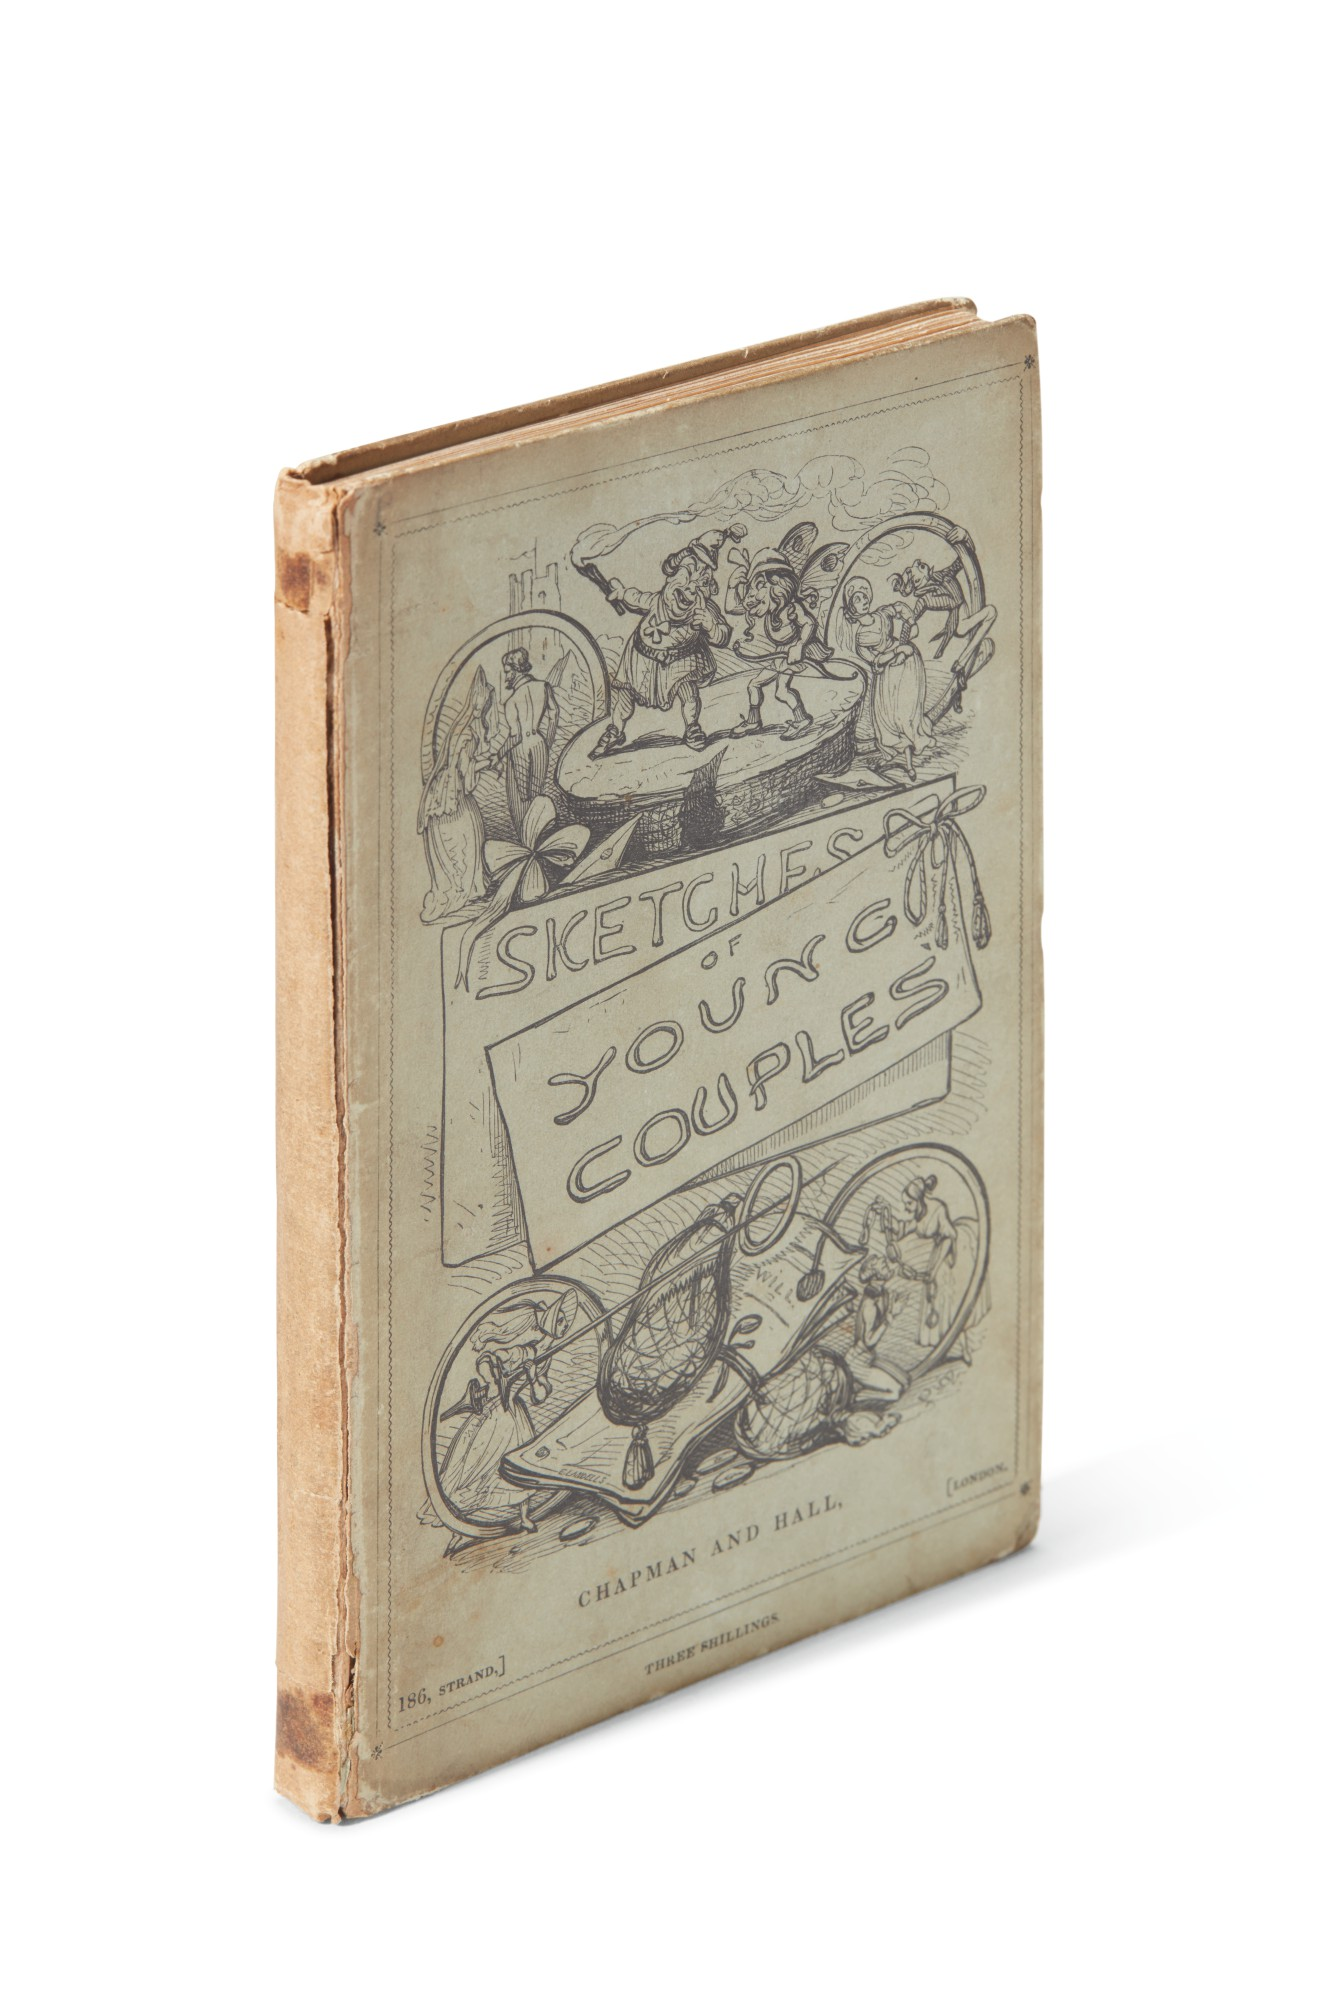 Dickens, Sketches of Young Couples, 1840, first edition